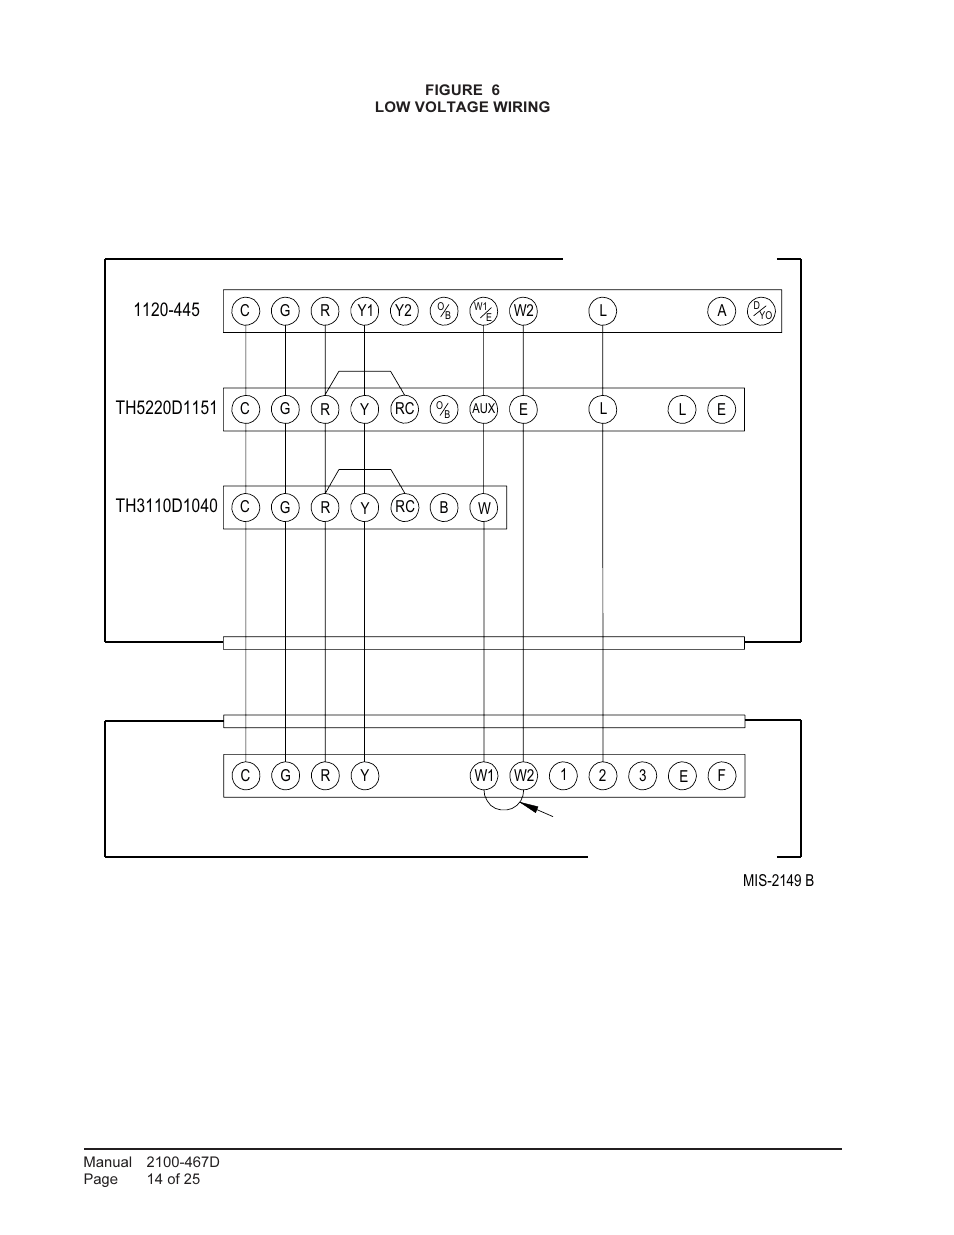 medium resolution of low voltage wiring unit control panel thermostat subbase bard single package air conditioners pa13241 a user manual page 14 25